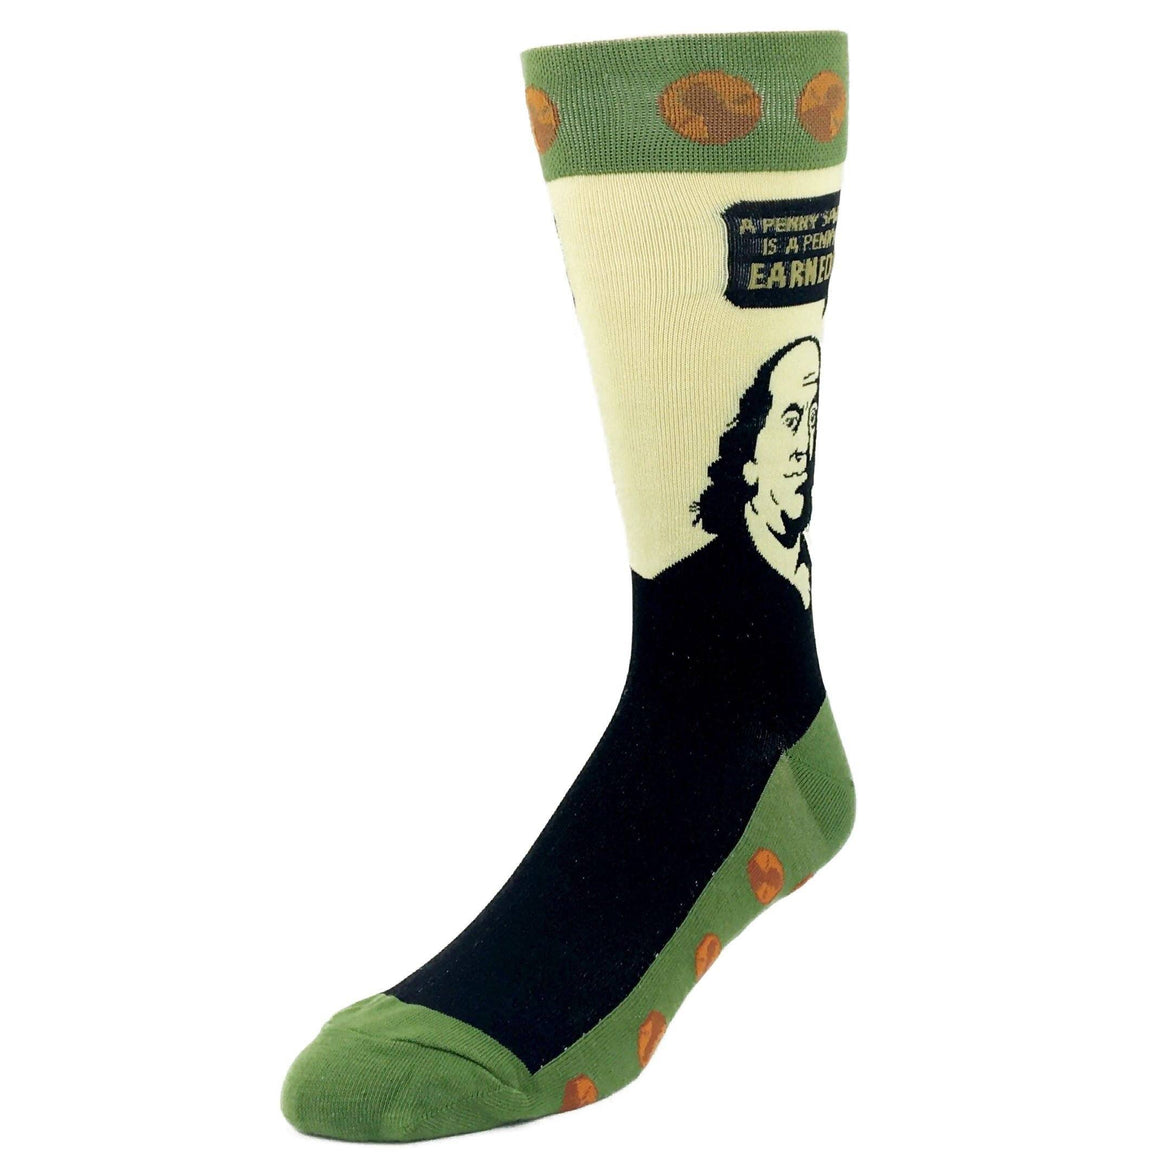 Ben Franklin Quote Socks by Foot Traffic - The Sock Spot